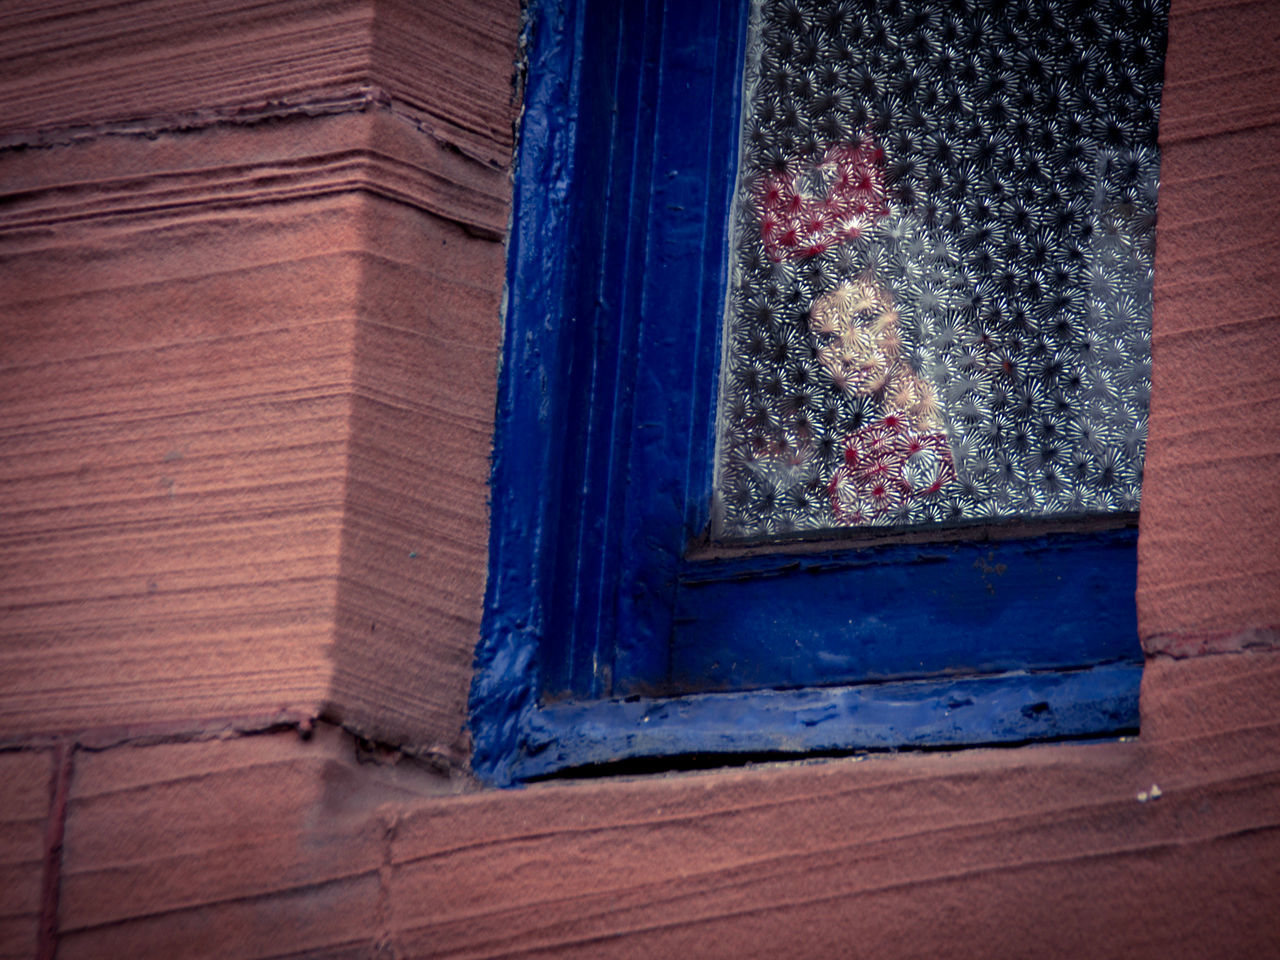 The Tea Cake Madonna. I don't even like Tunnocks Teacakes that much, I just think Scottish people are born with a spidey-sense for the damn things ;) f Architecture Blue Building Day Face Face At The Window Frosted Glass Glashow Glass Kitchen Madonna No People Pantry Portrait Red Sandstone Sandstone Scotland Scottish Tenement Tunnocks Teacakes Window Woman Portrait Fine Art Photography Colour Of Life Battle Of The Cities